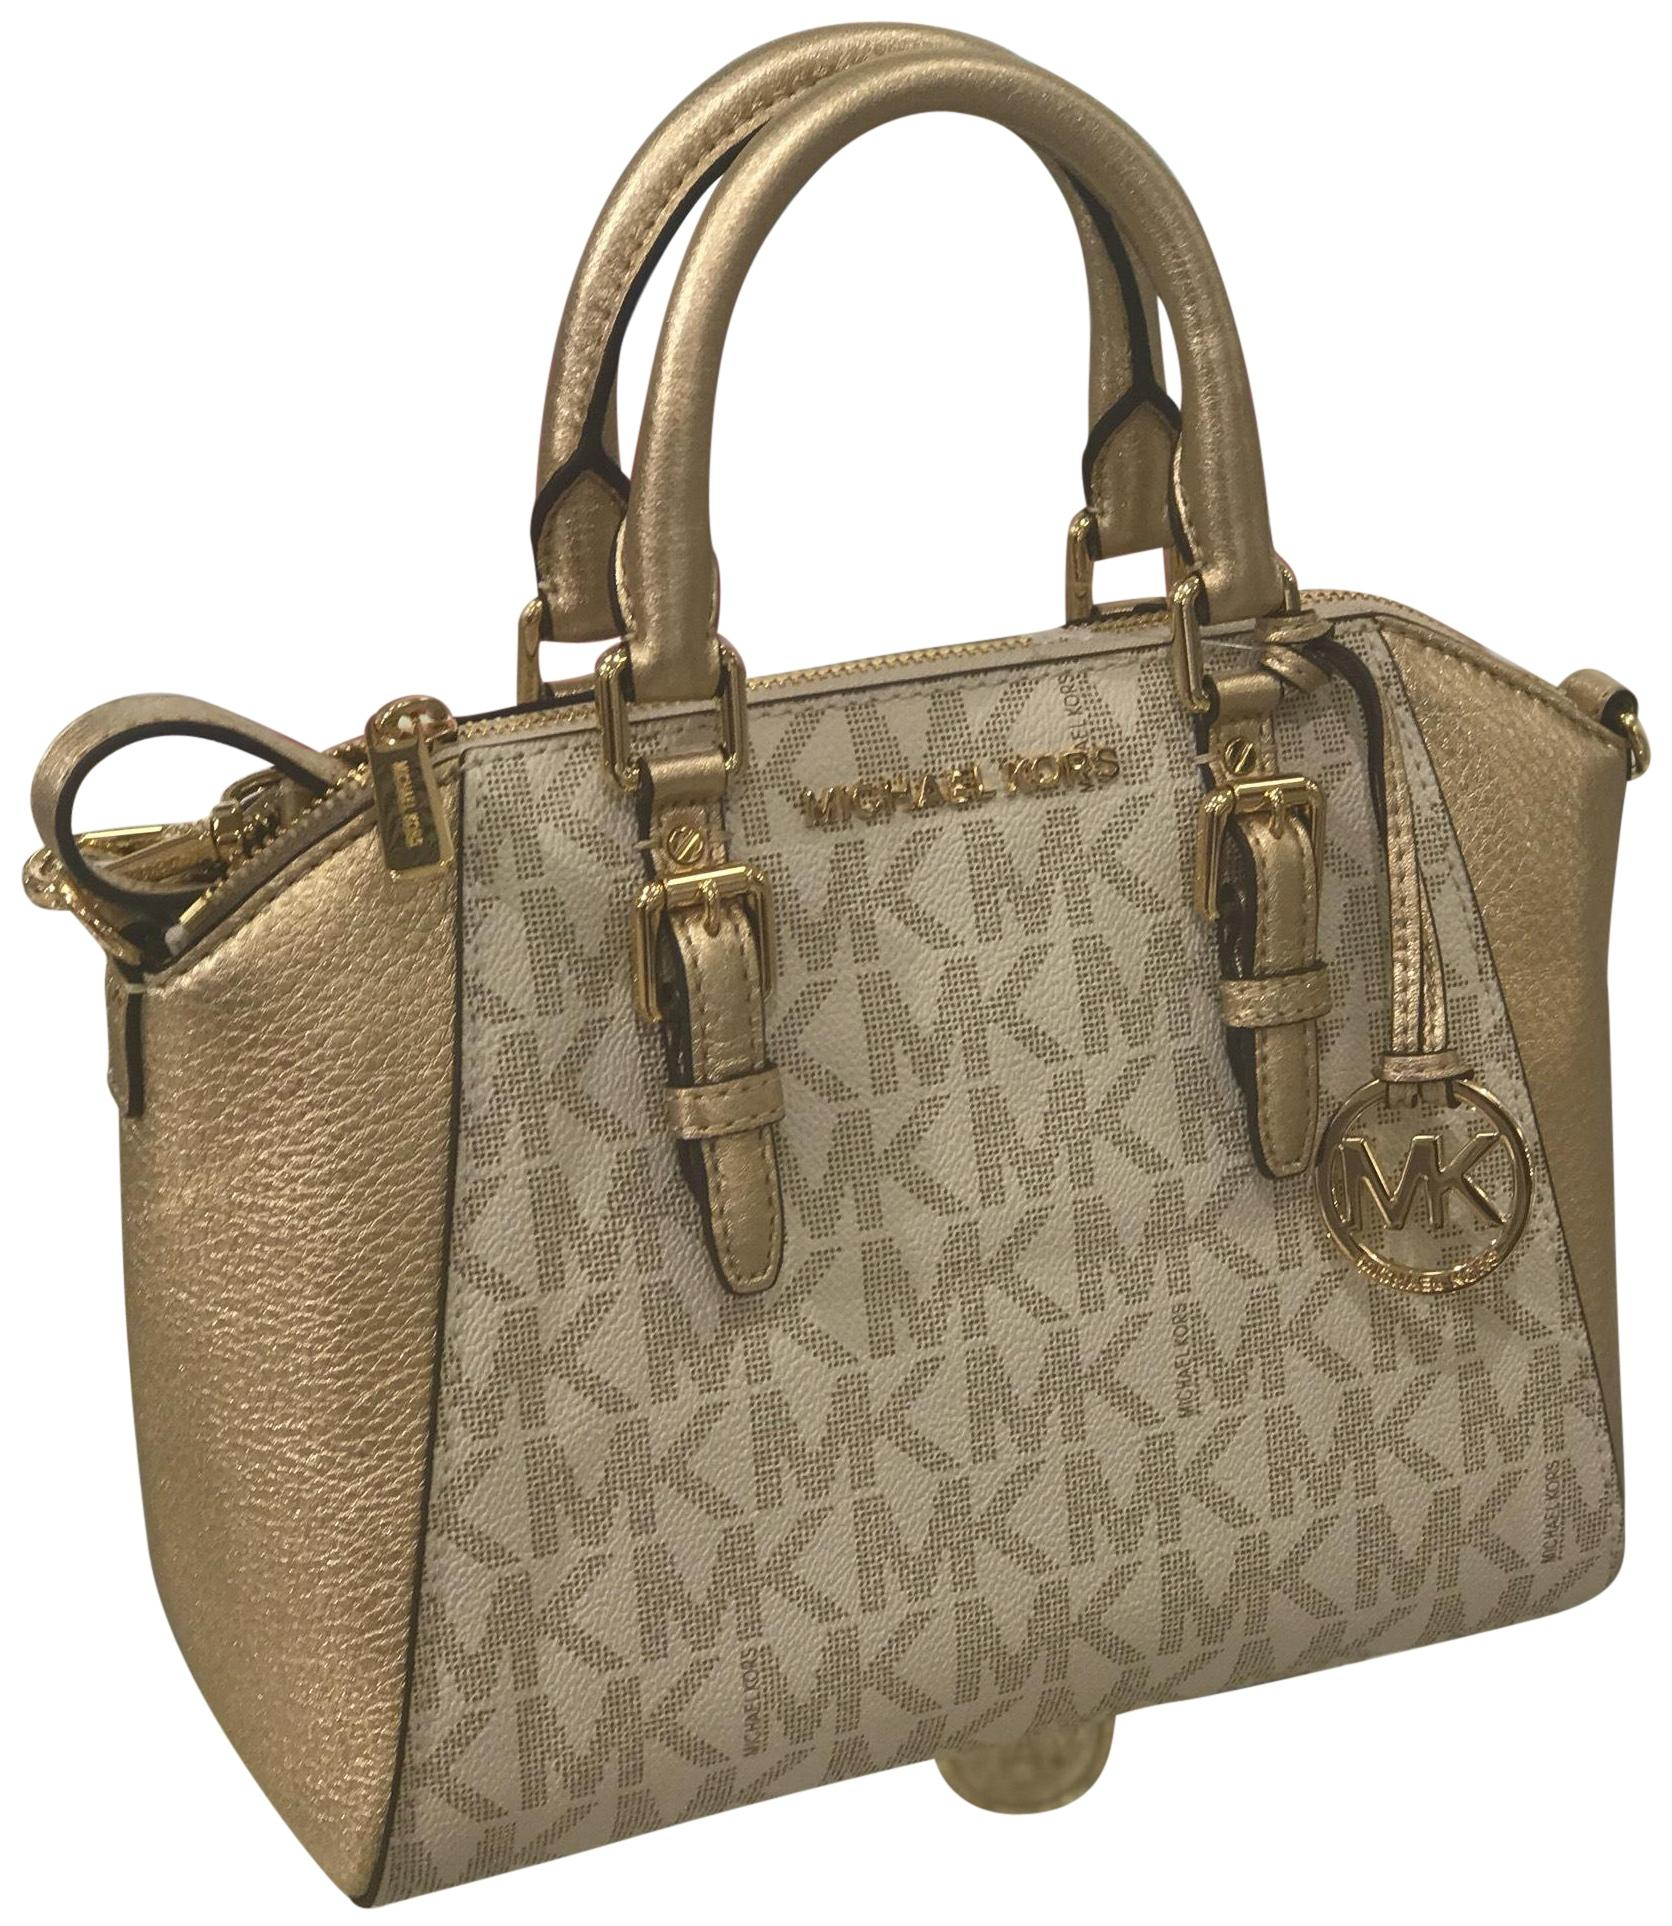 cfed622688fa top quality michael kors large grayson satchel brown rust 17a57 a368d